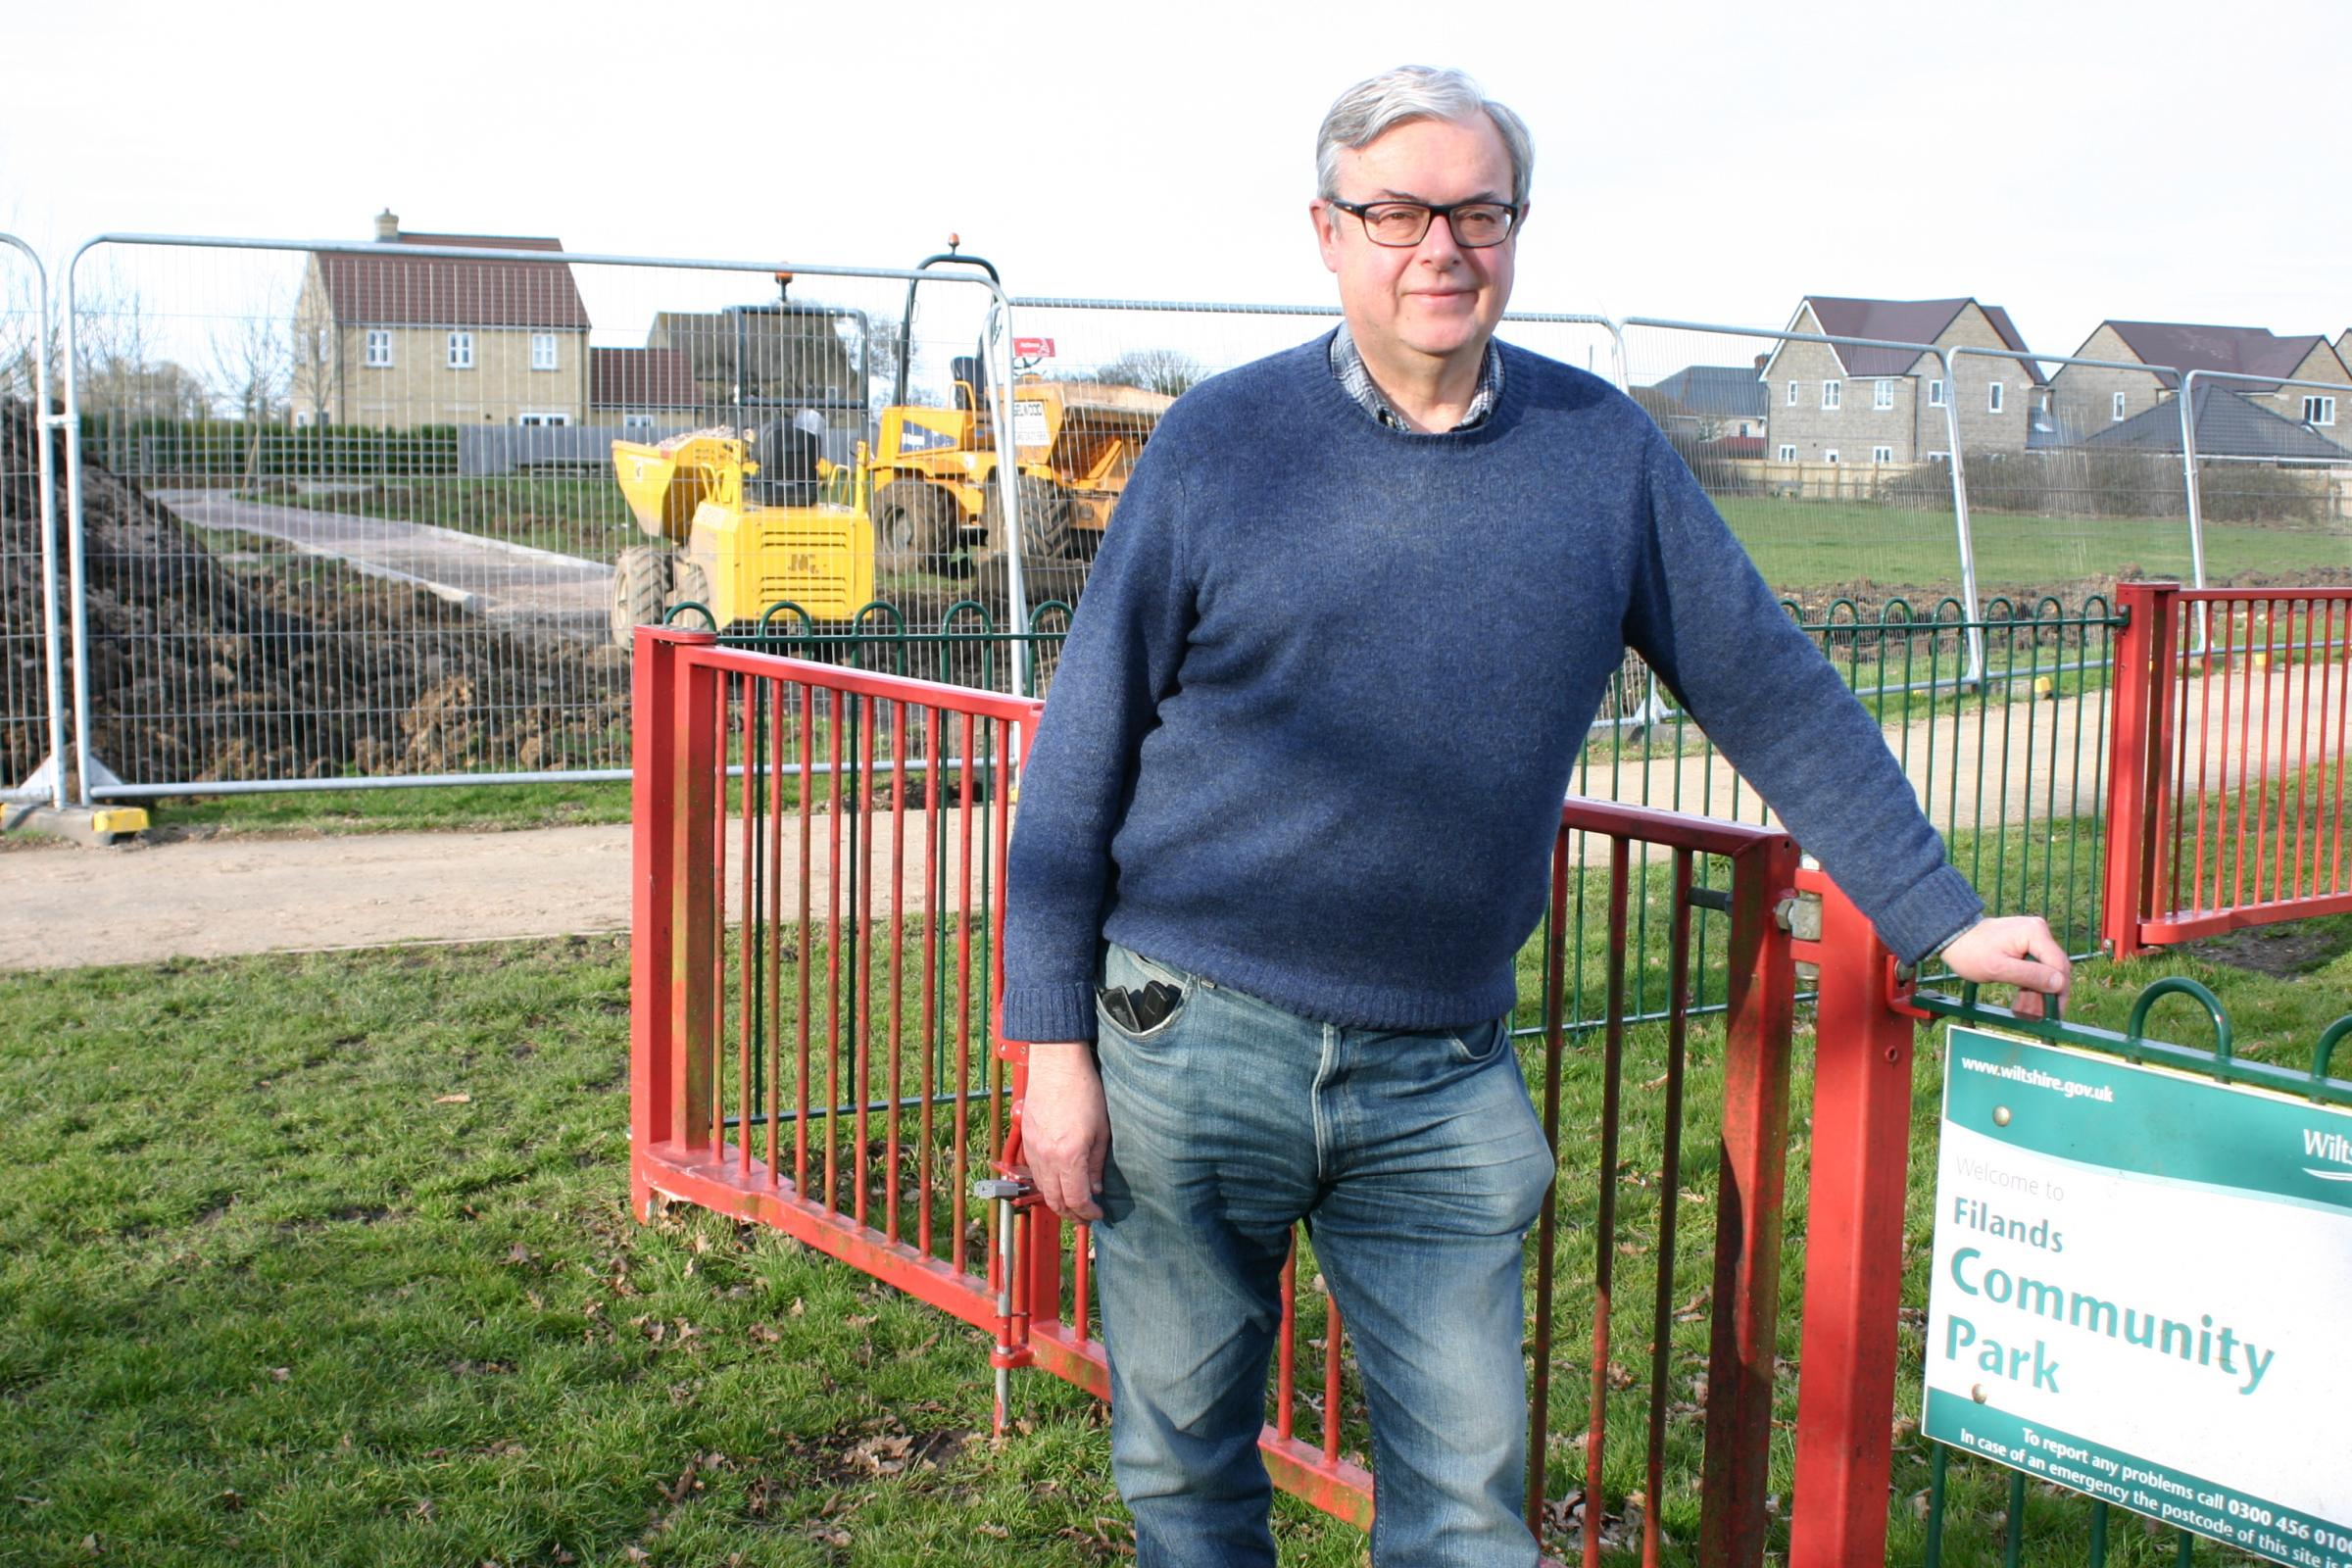 Town councillor Gavin Grant next to the Filands playpark in Malmesbury, one of two areas which are to be revamped thanks to funding given by a developer to the community.